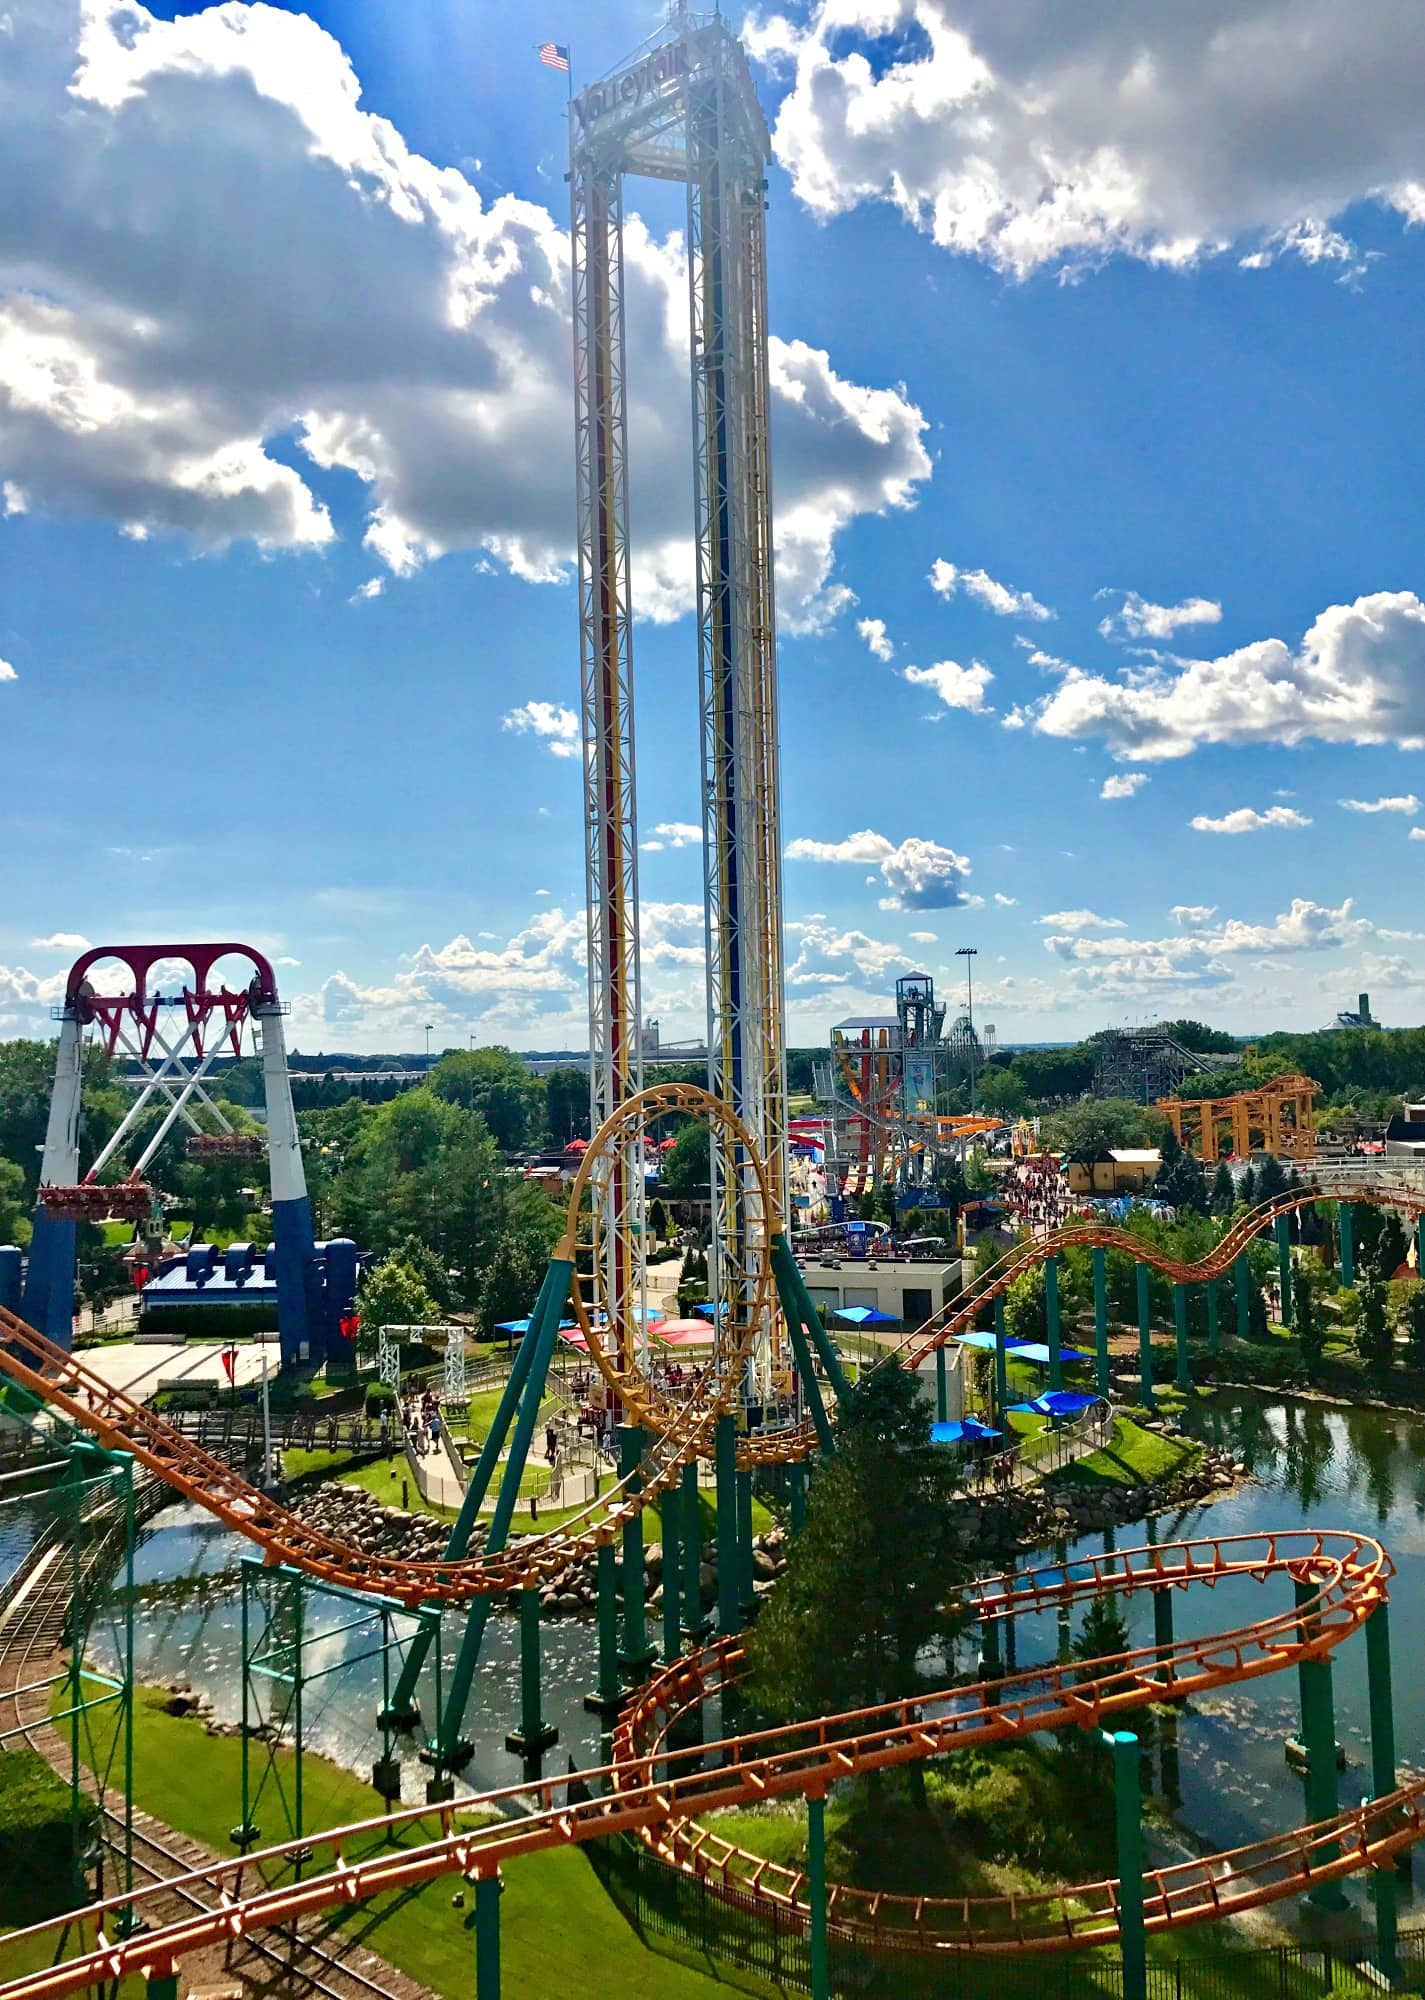 There are 44 rides at Valleyfair ~ Minnesota's largest theme park